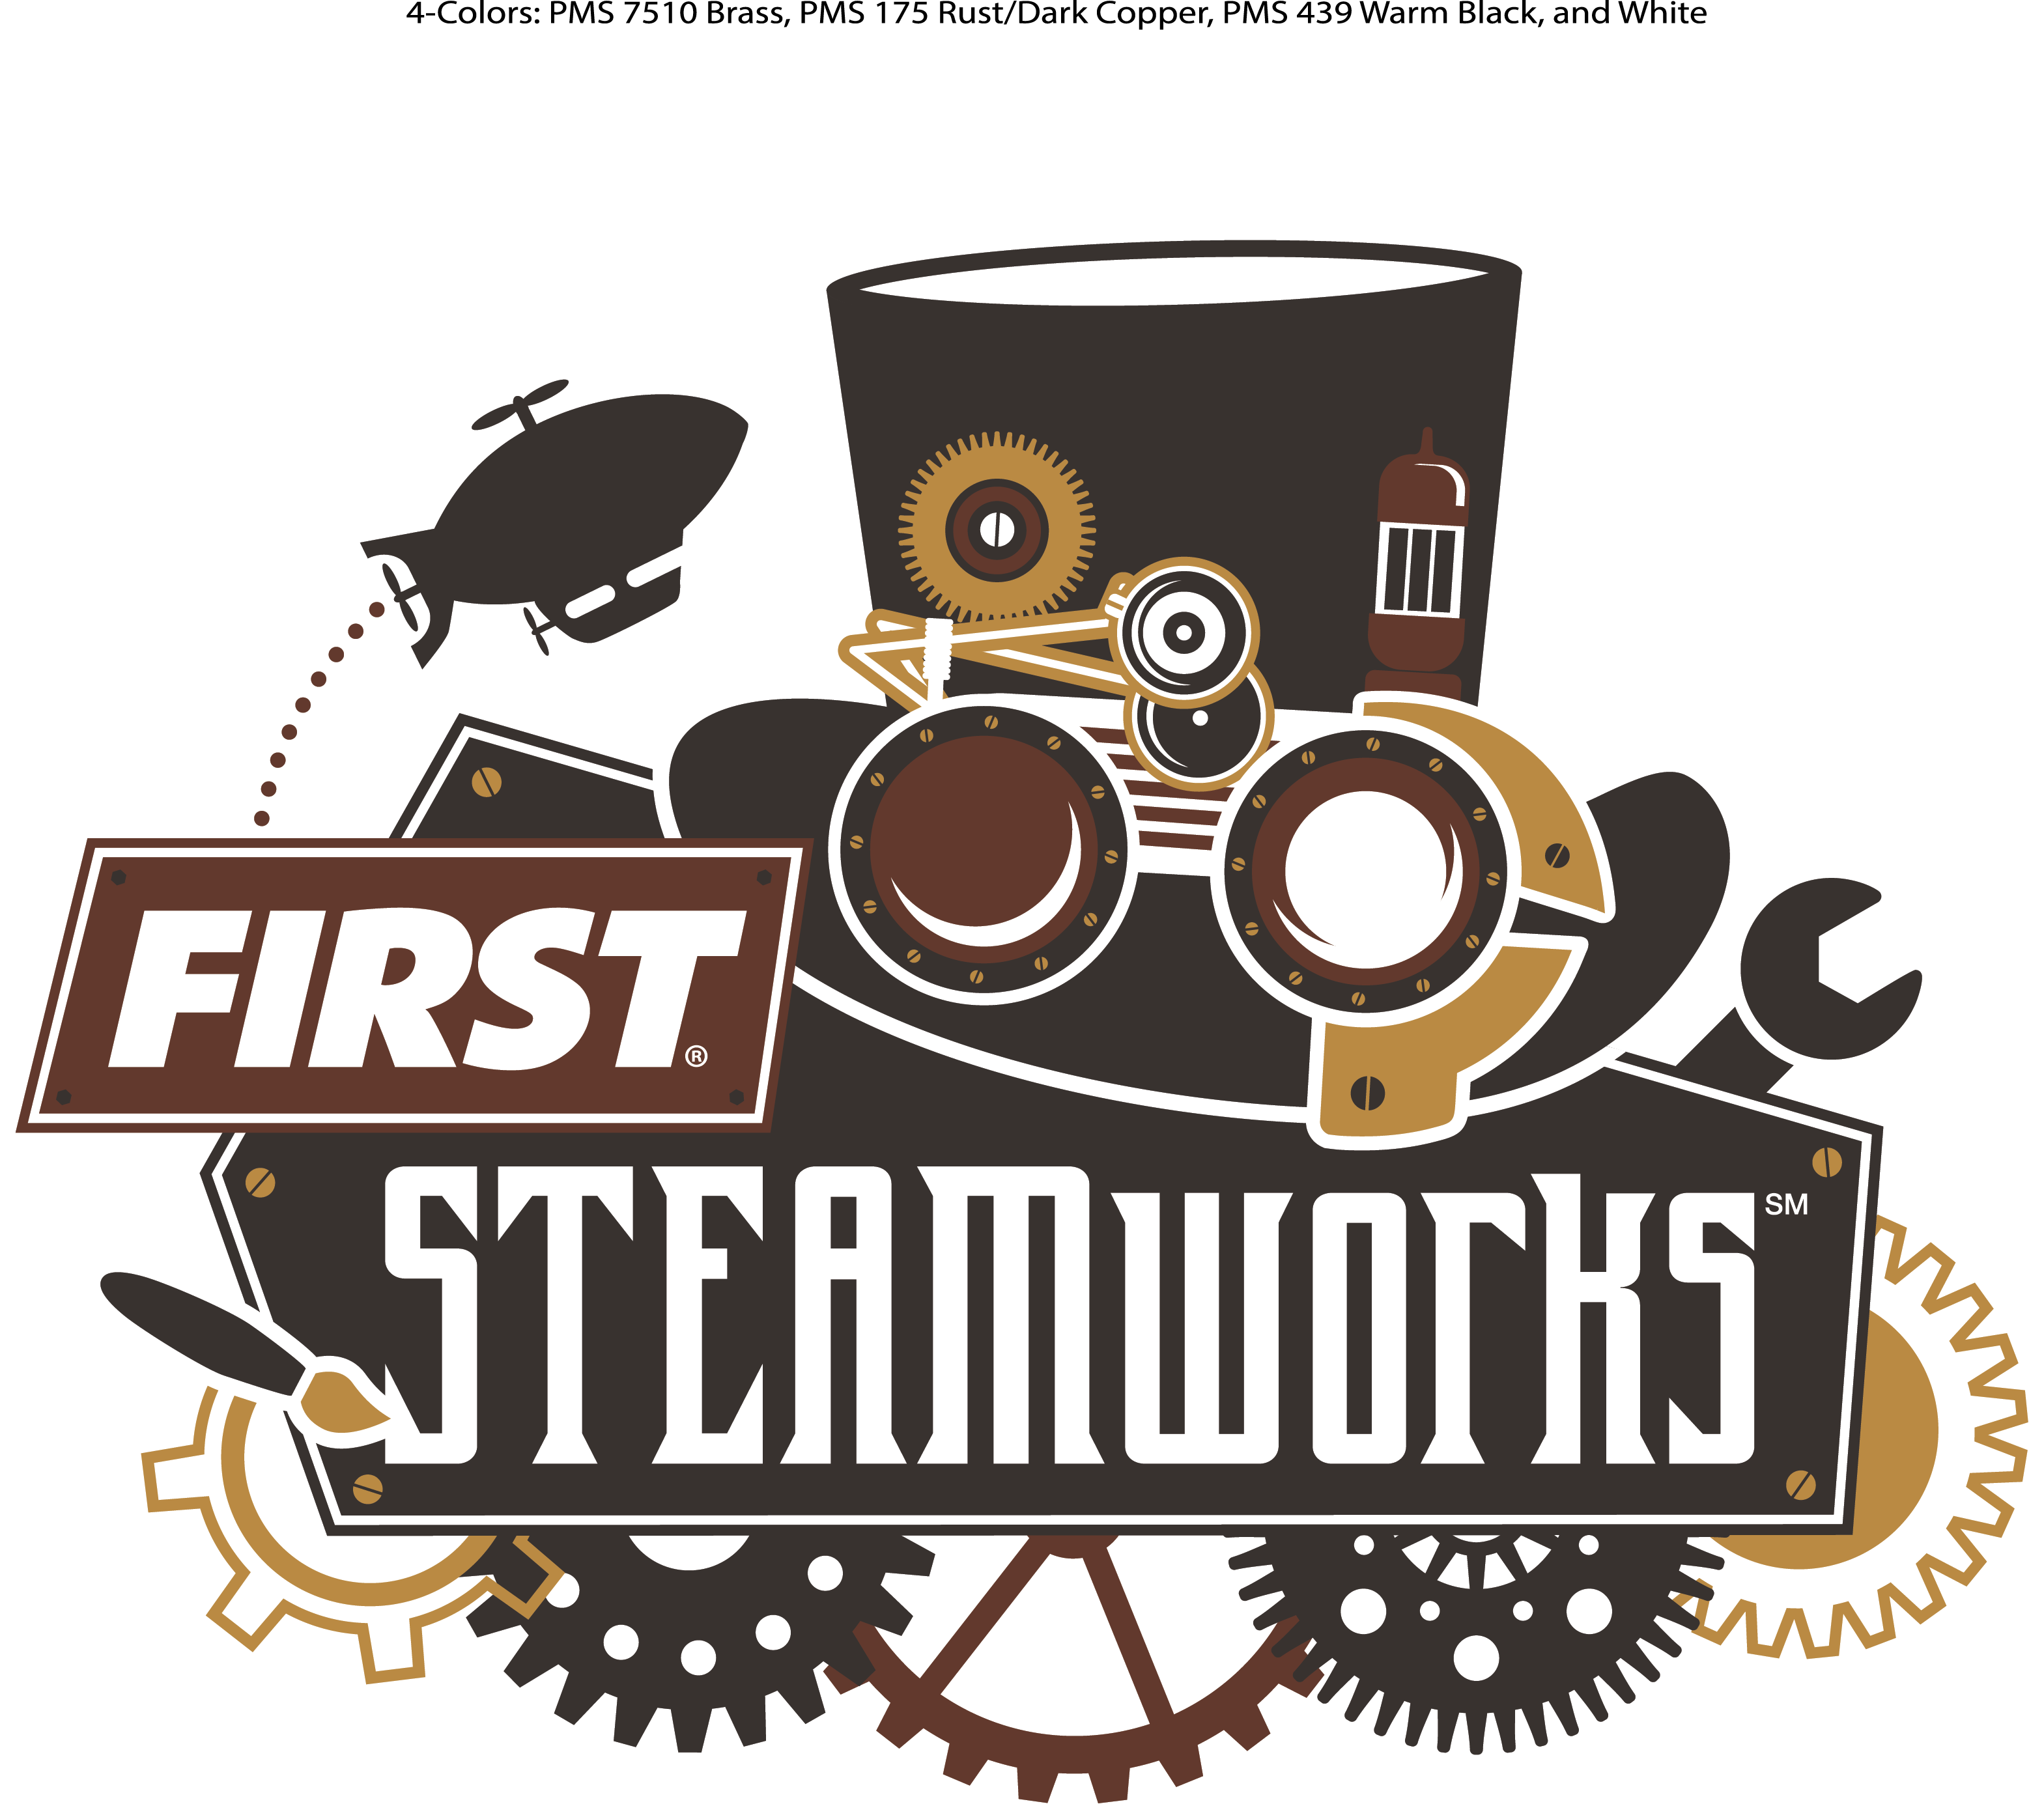 Rush Championship Steamworks Robot Motion Recycle Logo PNG Image